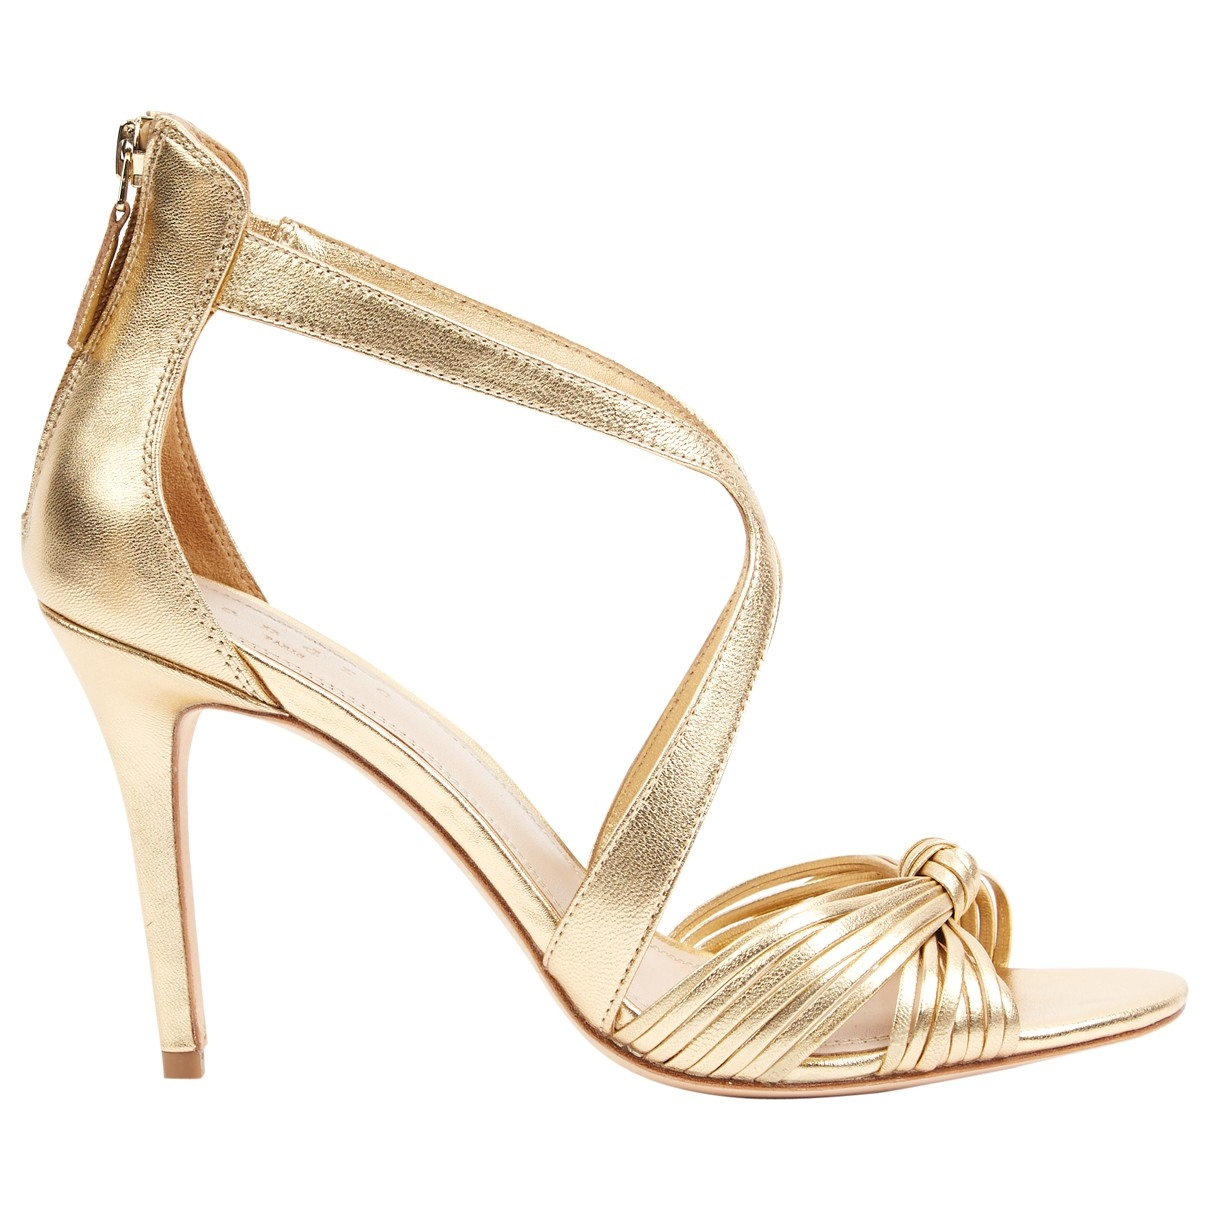 Sandro \N Gold Leather Sandals for Women 40 EU